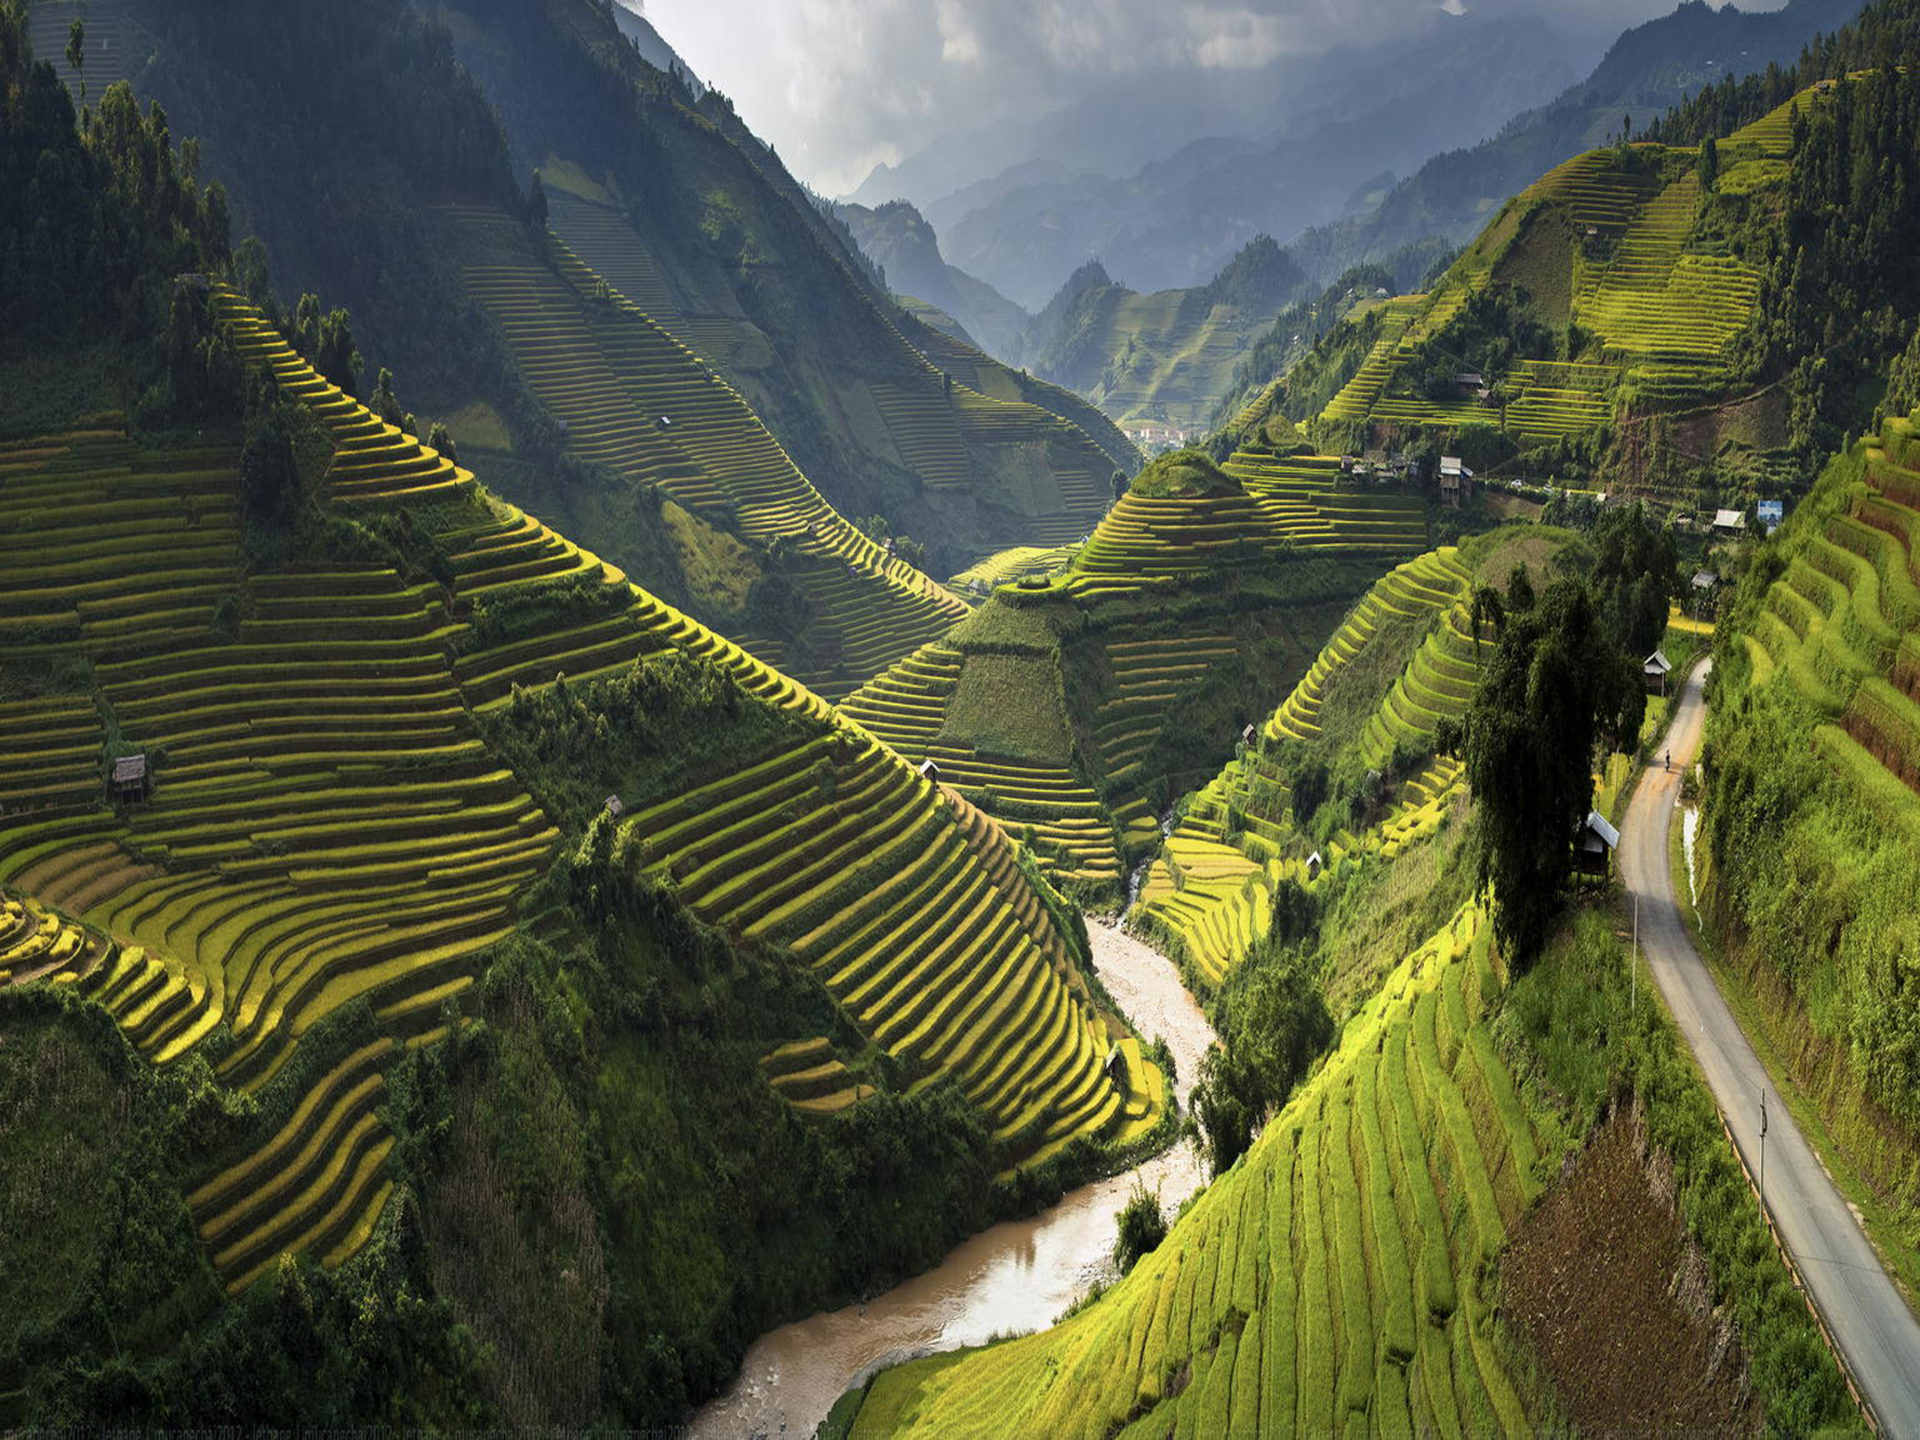 Hd Car Wallpapers For Tablet Landscape Terasasti Fields With Rice Mu Cang Chai District